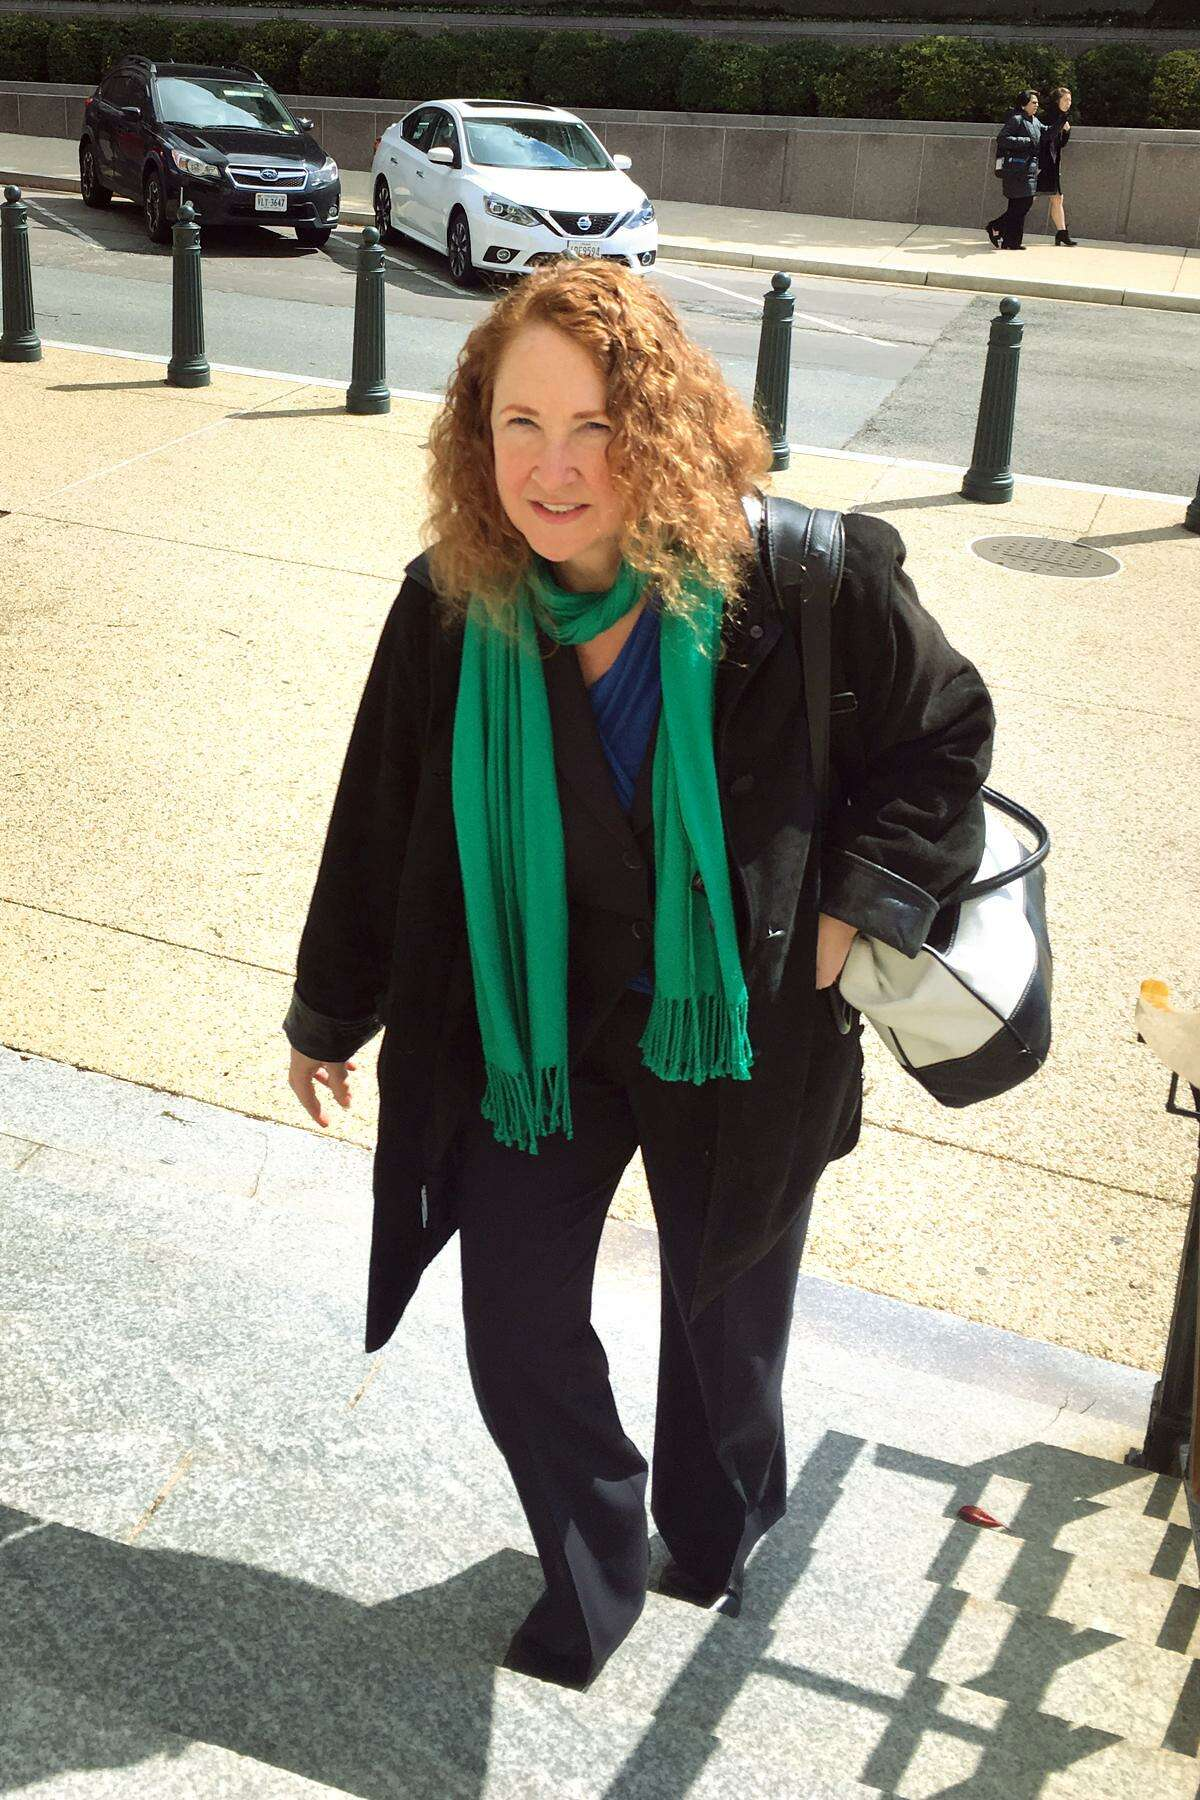 U.S. Rep. Elizabeth Esty returned to work in Washington D.C. Tuesday after a self-imposed two-week exile in the wake of abruptly withdrawing from her 2018 re-election bid. It is Esty?'s first full day back at work after acknowledging serious errors in judgment in handling the firing of her former chief of staff.